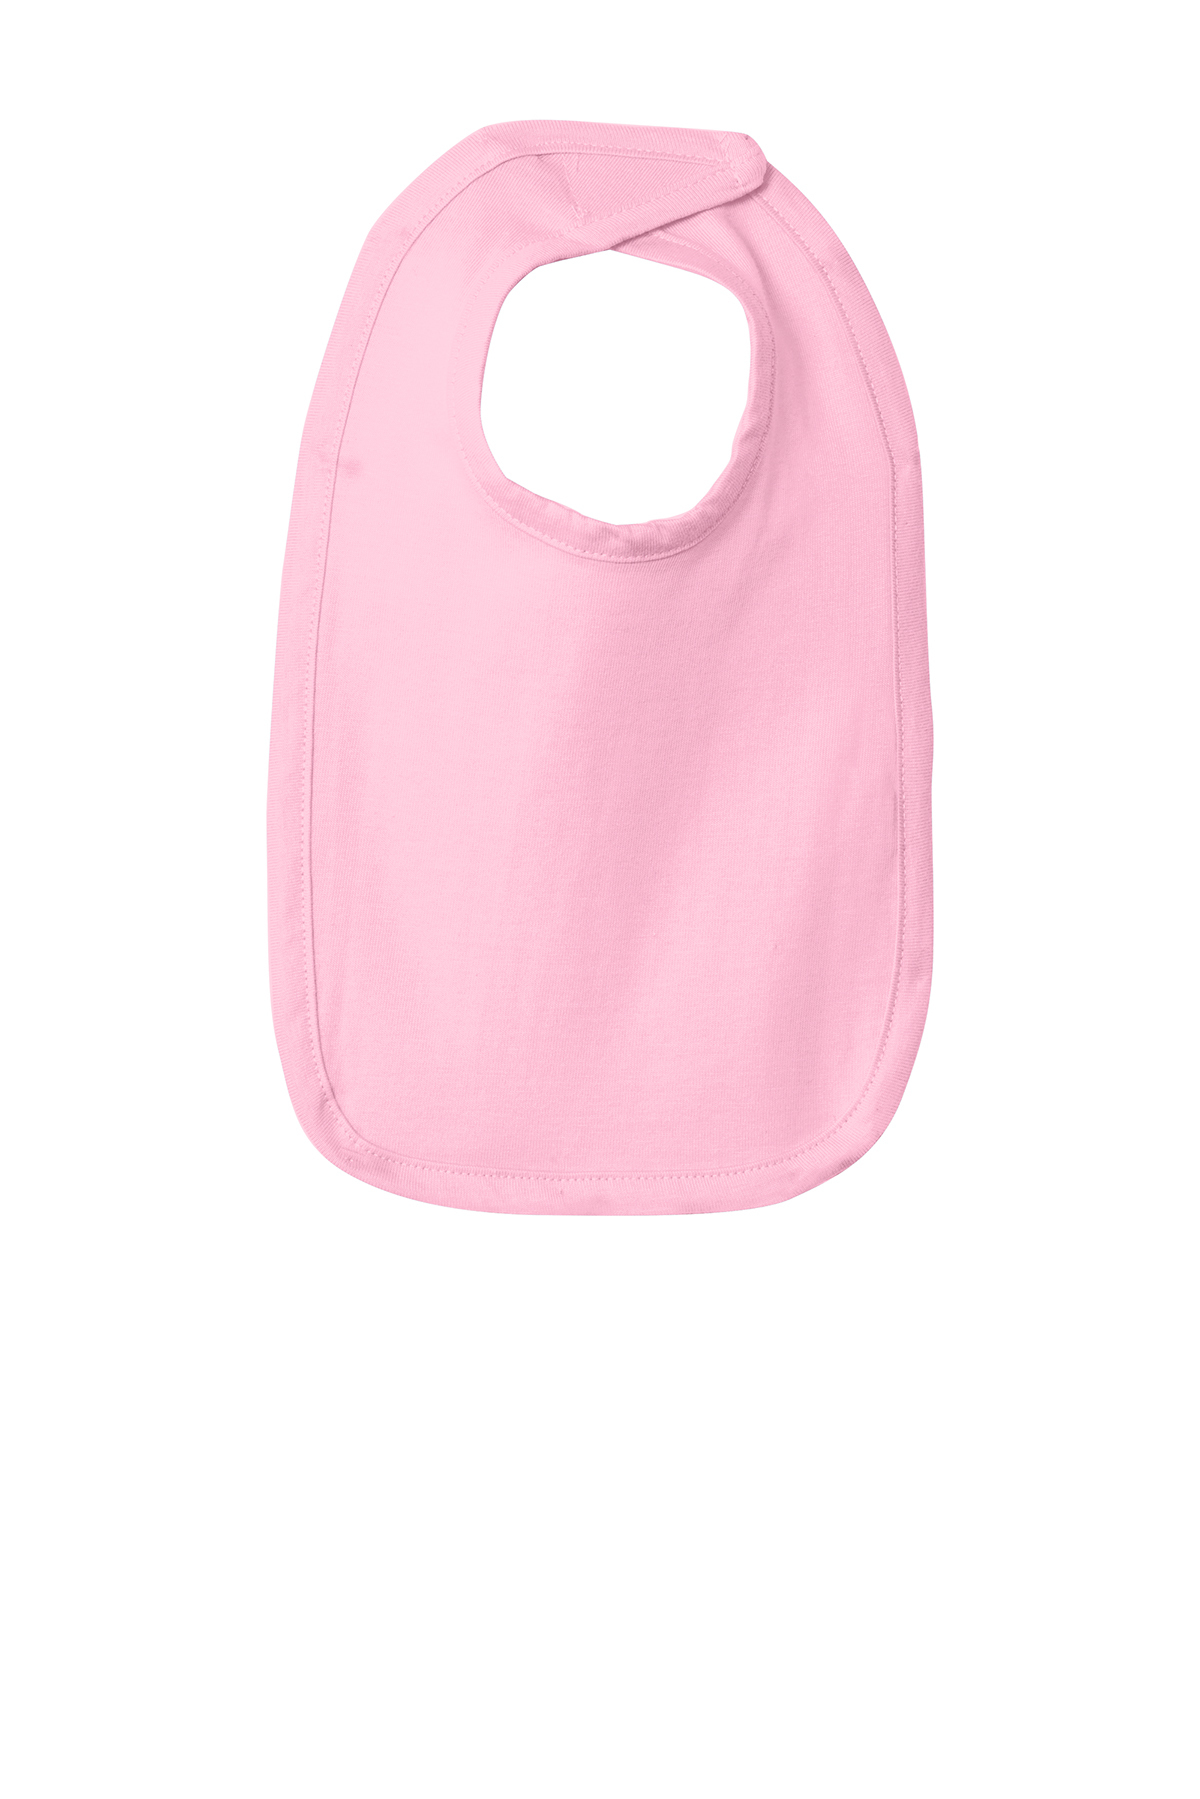 d3bb2f0cb67 Rabbit Skins™ Infant Premium Jersey Bib | Infant & Toddler | Youth ...